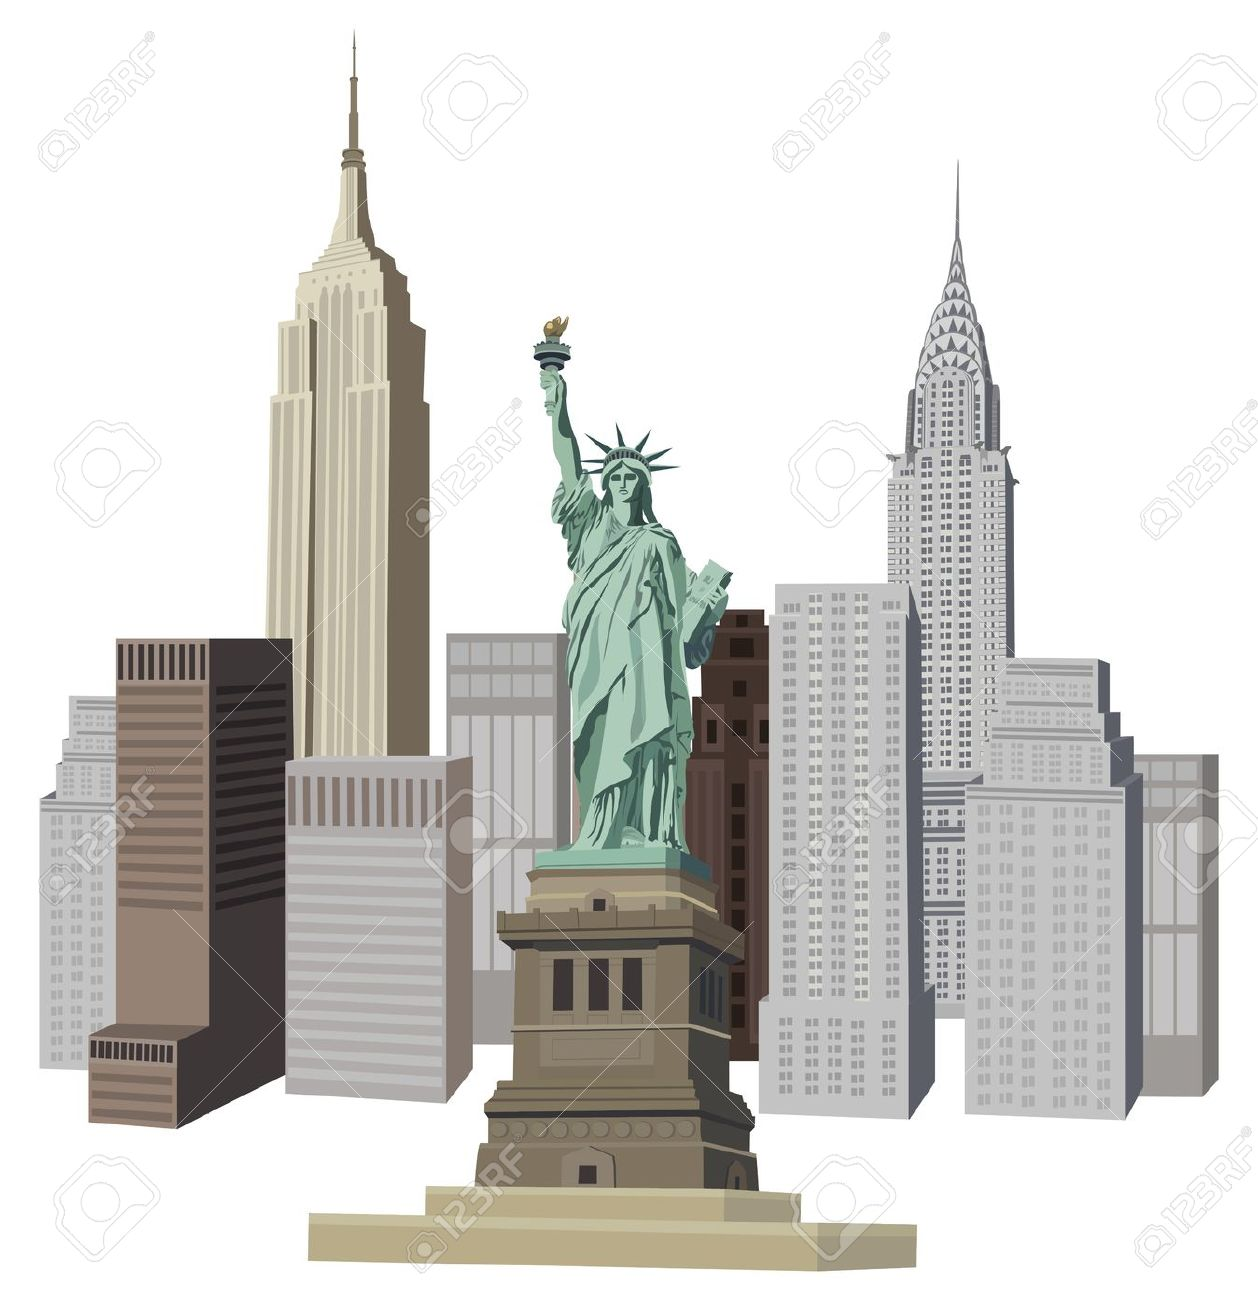 New york clipart images image black and white library New York Clip Art Free | Clipart Panda - Free Clipart Images image black and white library